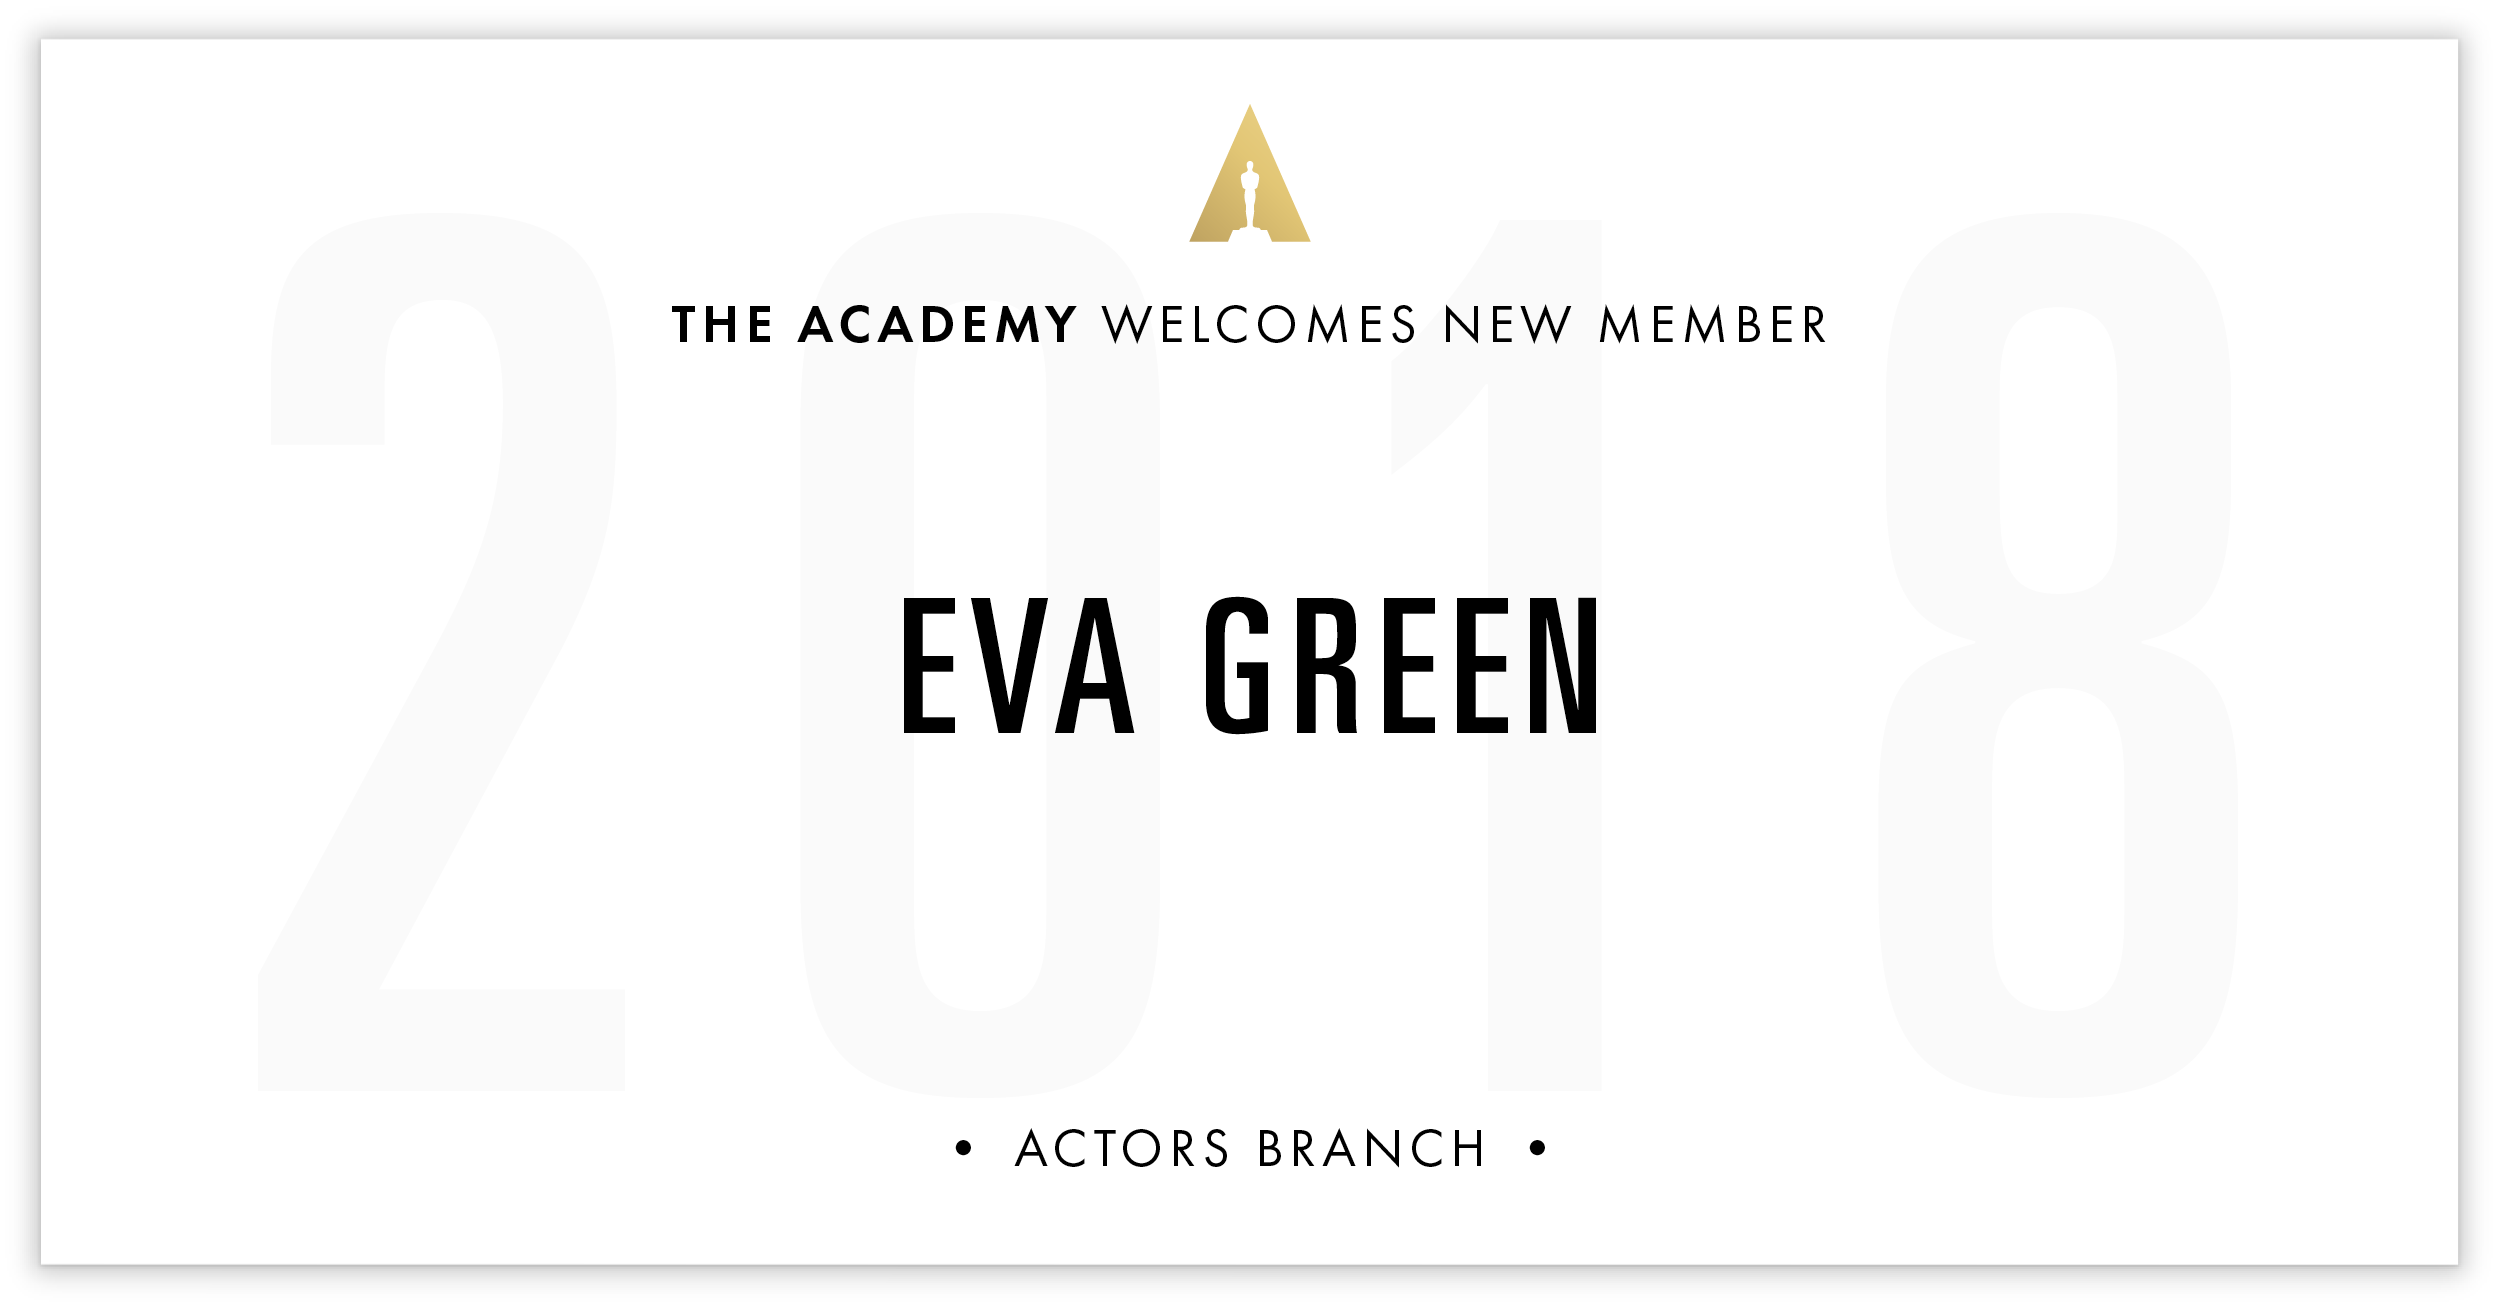 Eva Green is invited!